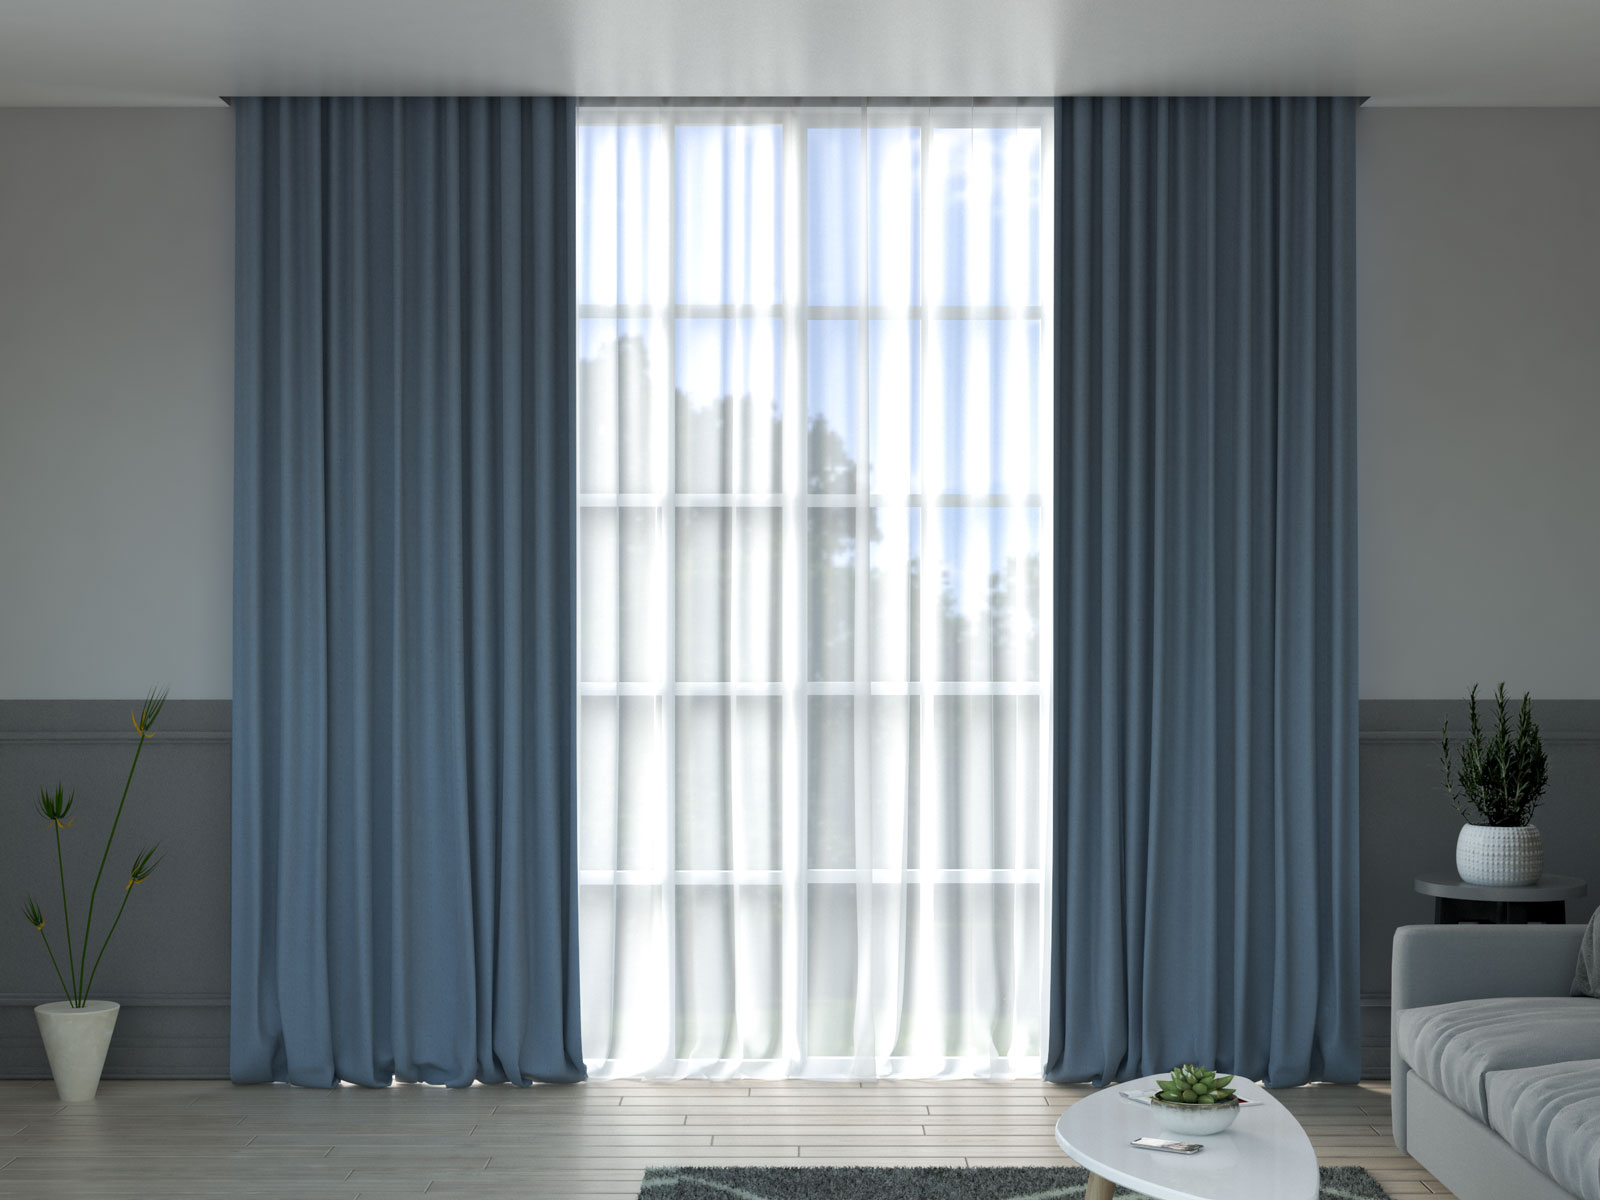 Dusty blue curtain with gray walls